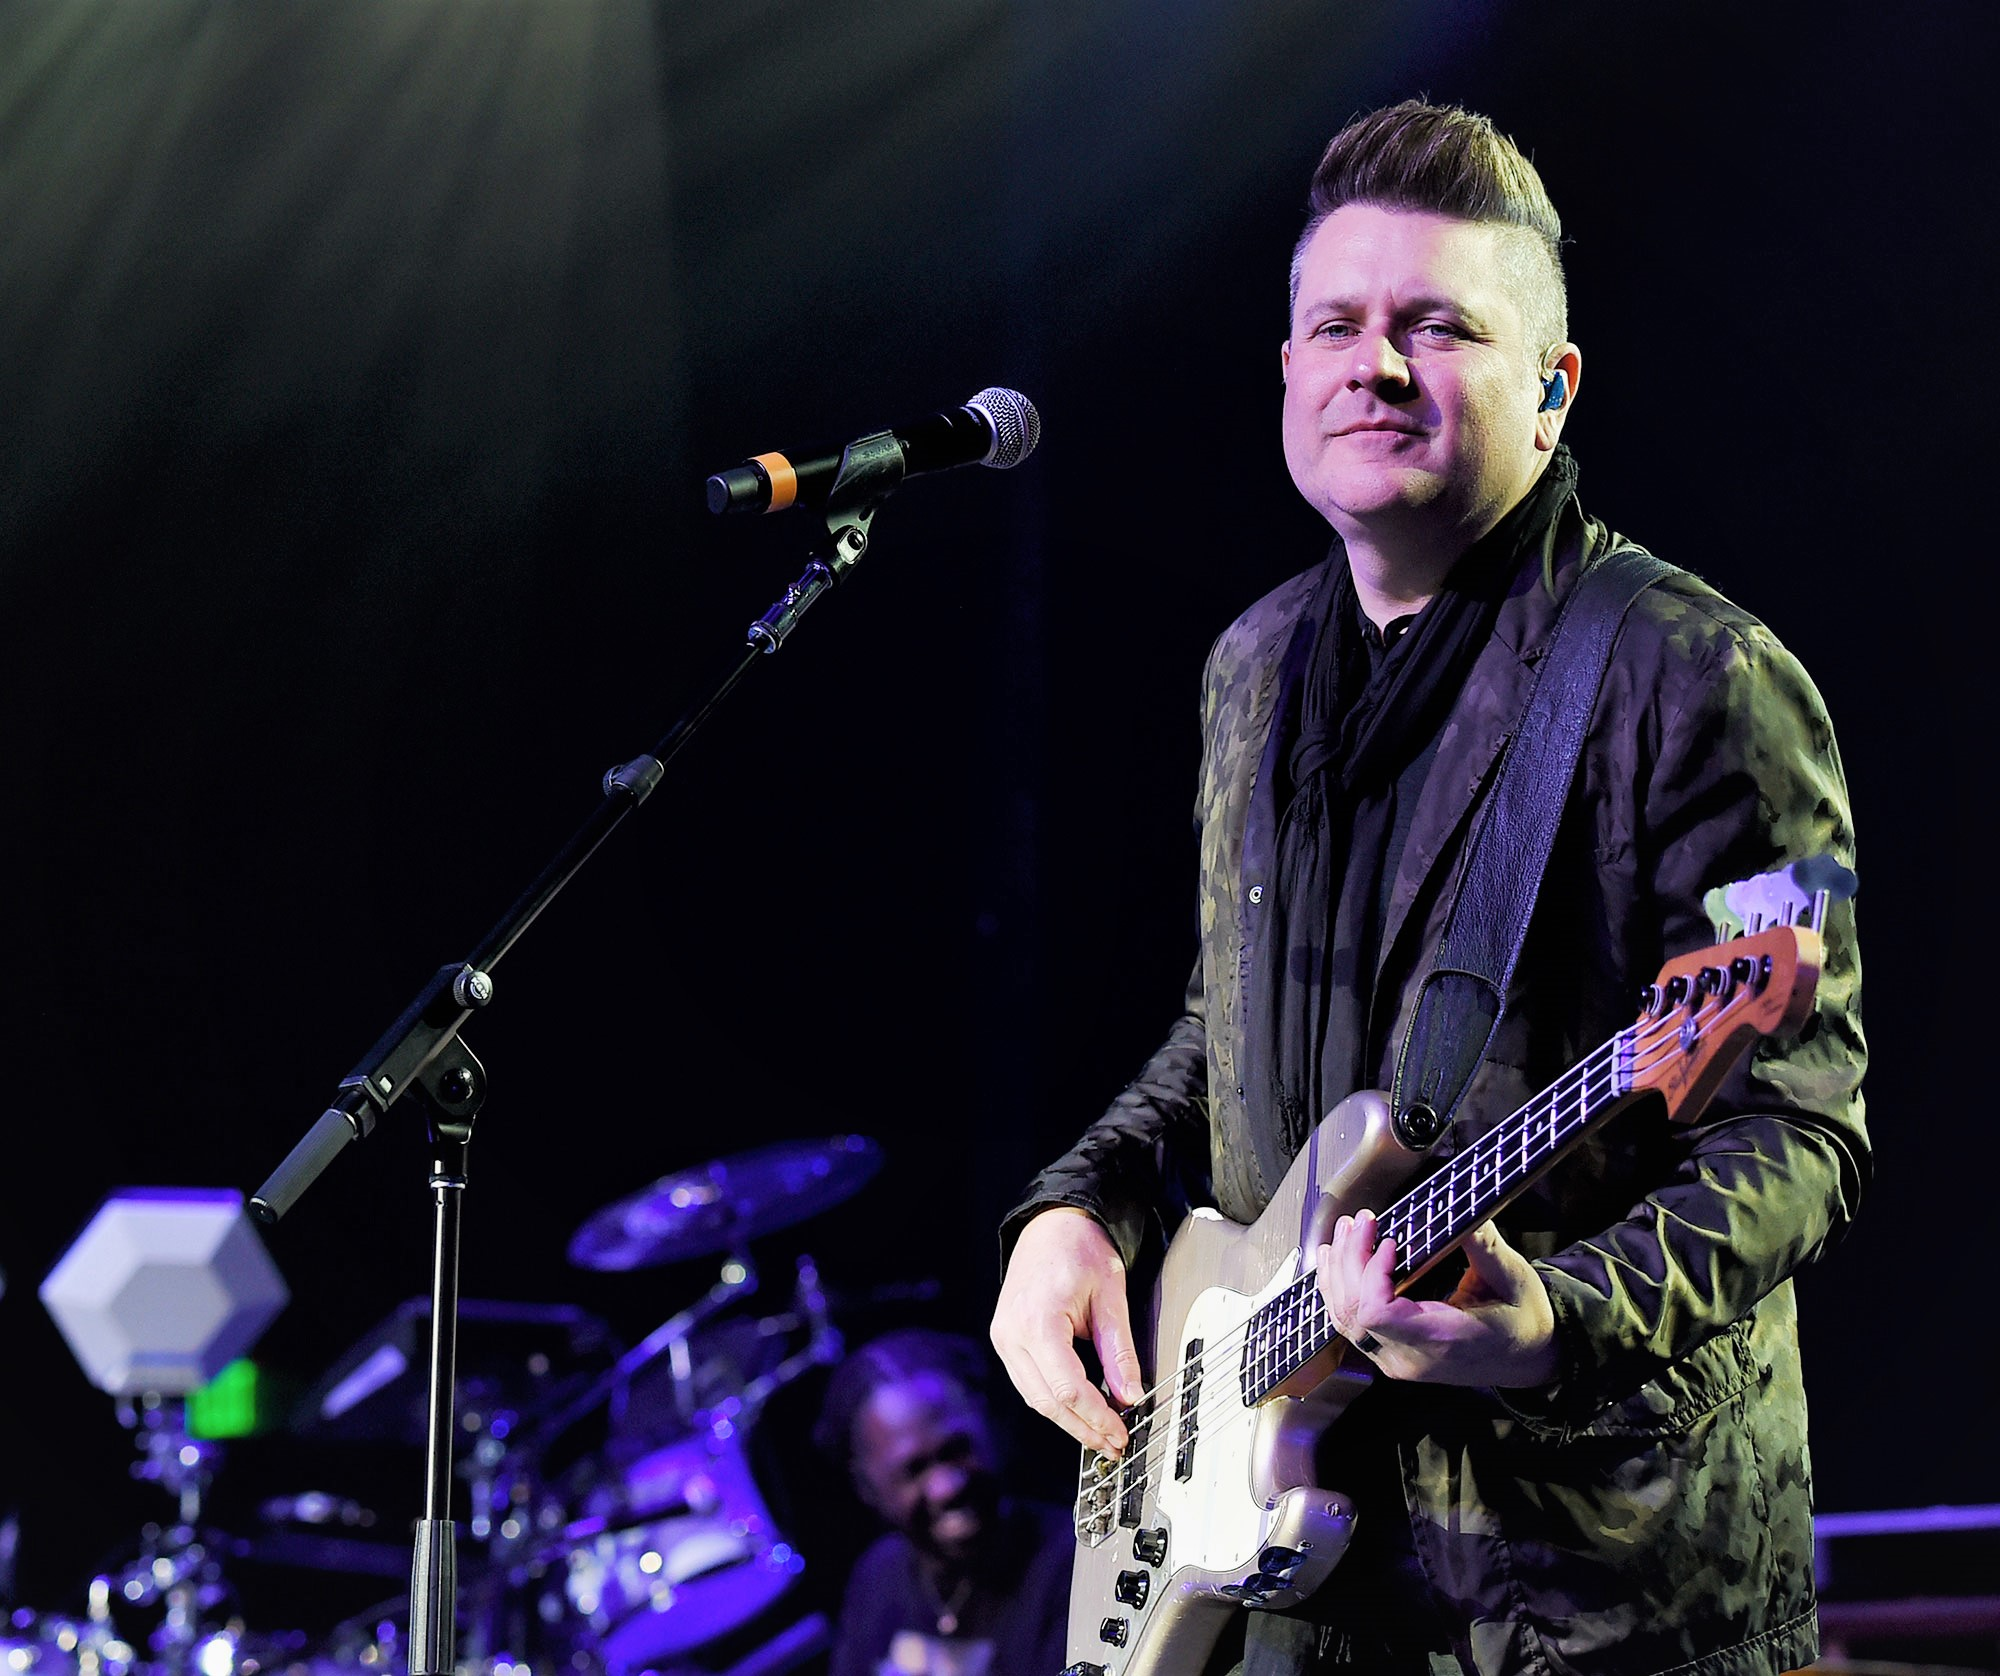 Jay DeMarcus Reveals He Previously Placed a Daughter for Adoption: 'I Wanted to Be in Her Life'